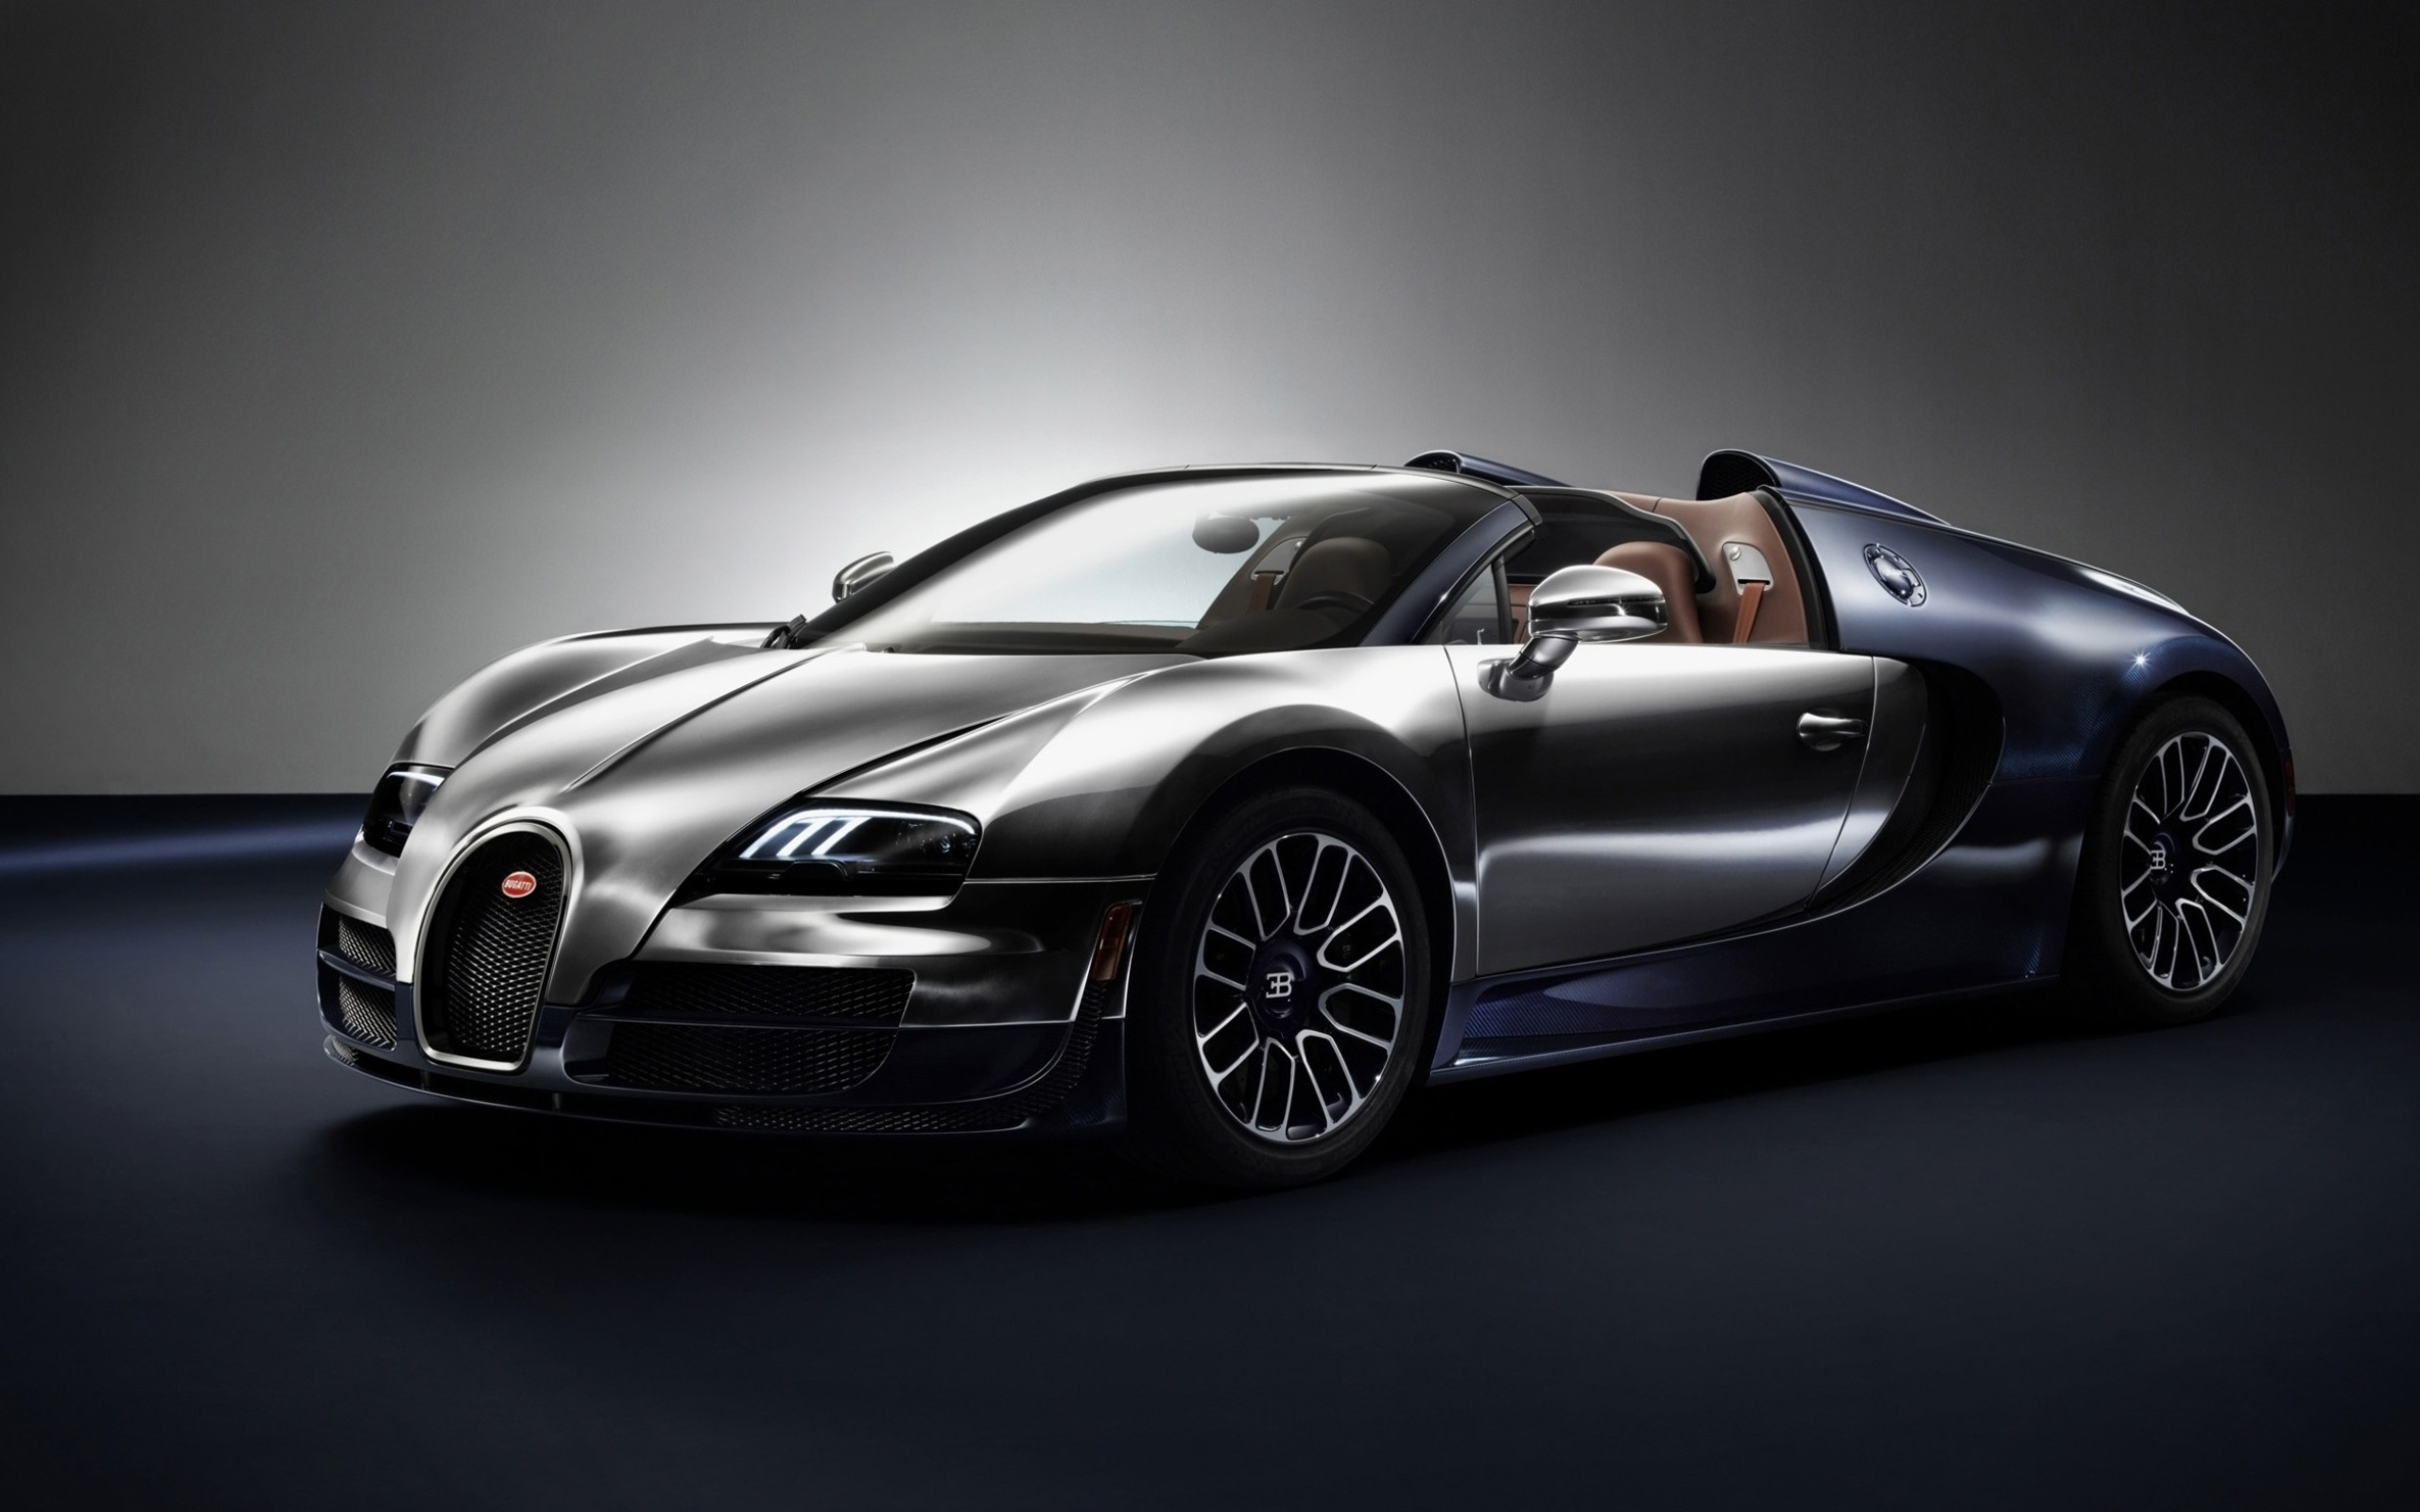 Bugatti veyron wallpapers pictures images - Bugatti veyron photos wallpapers ...